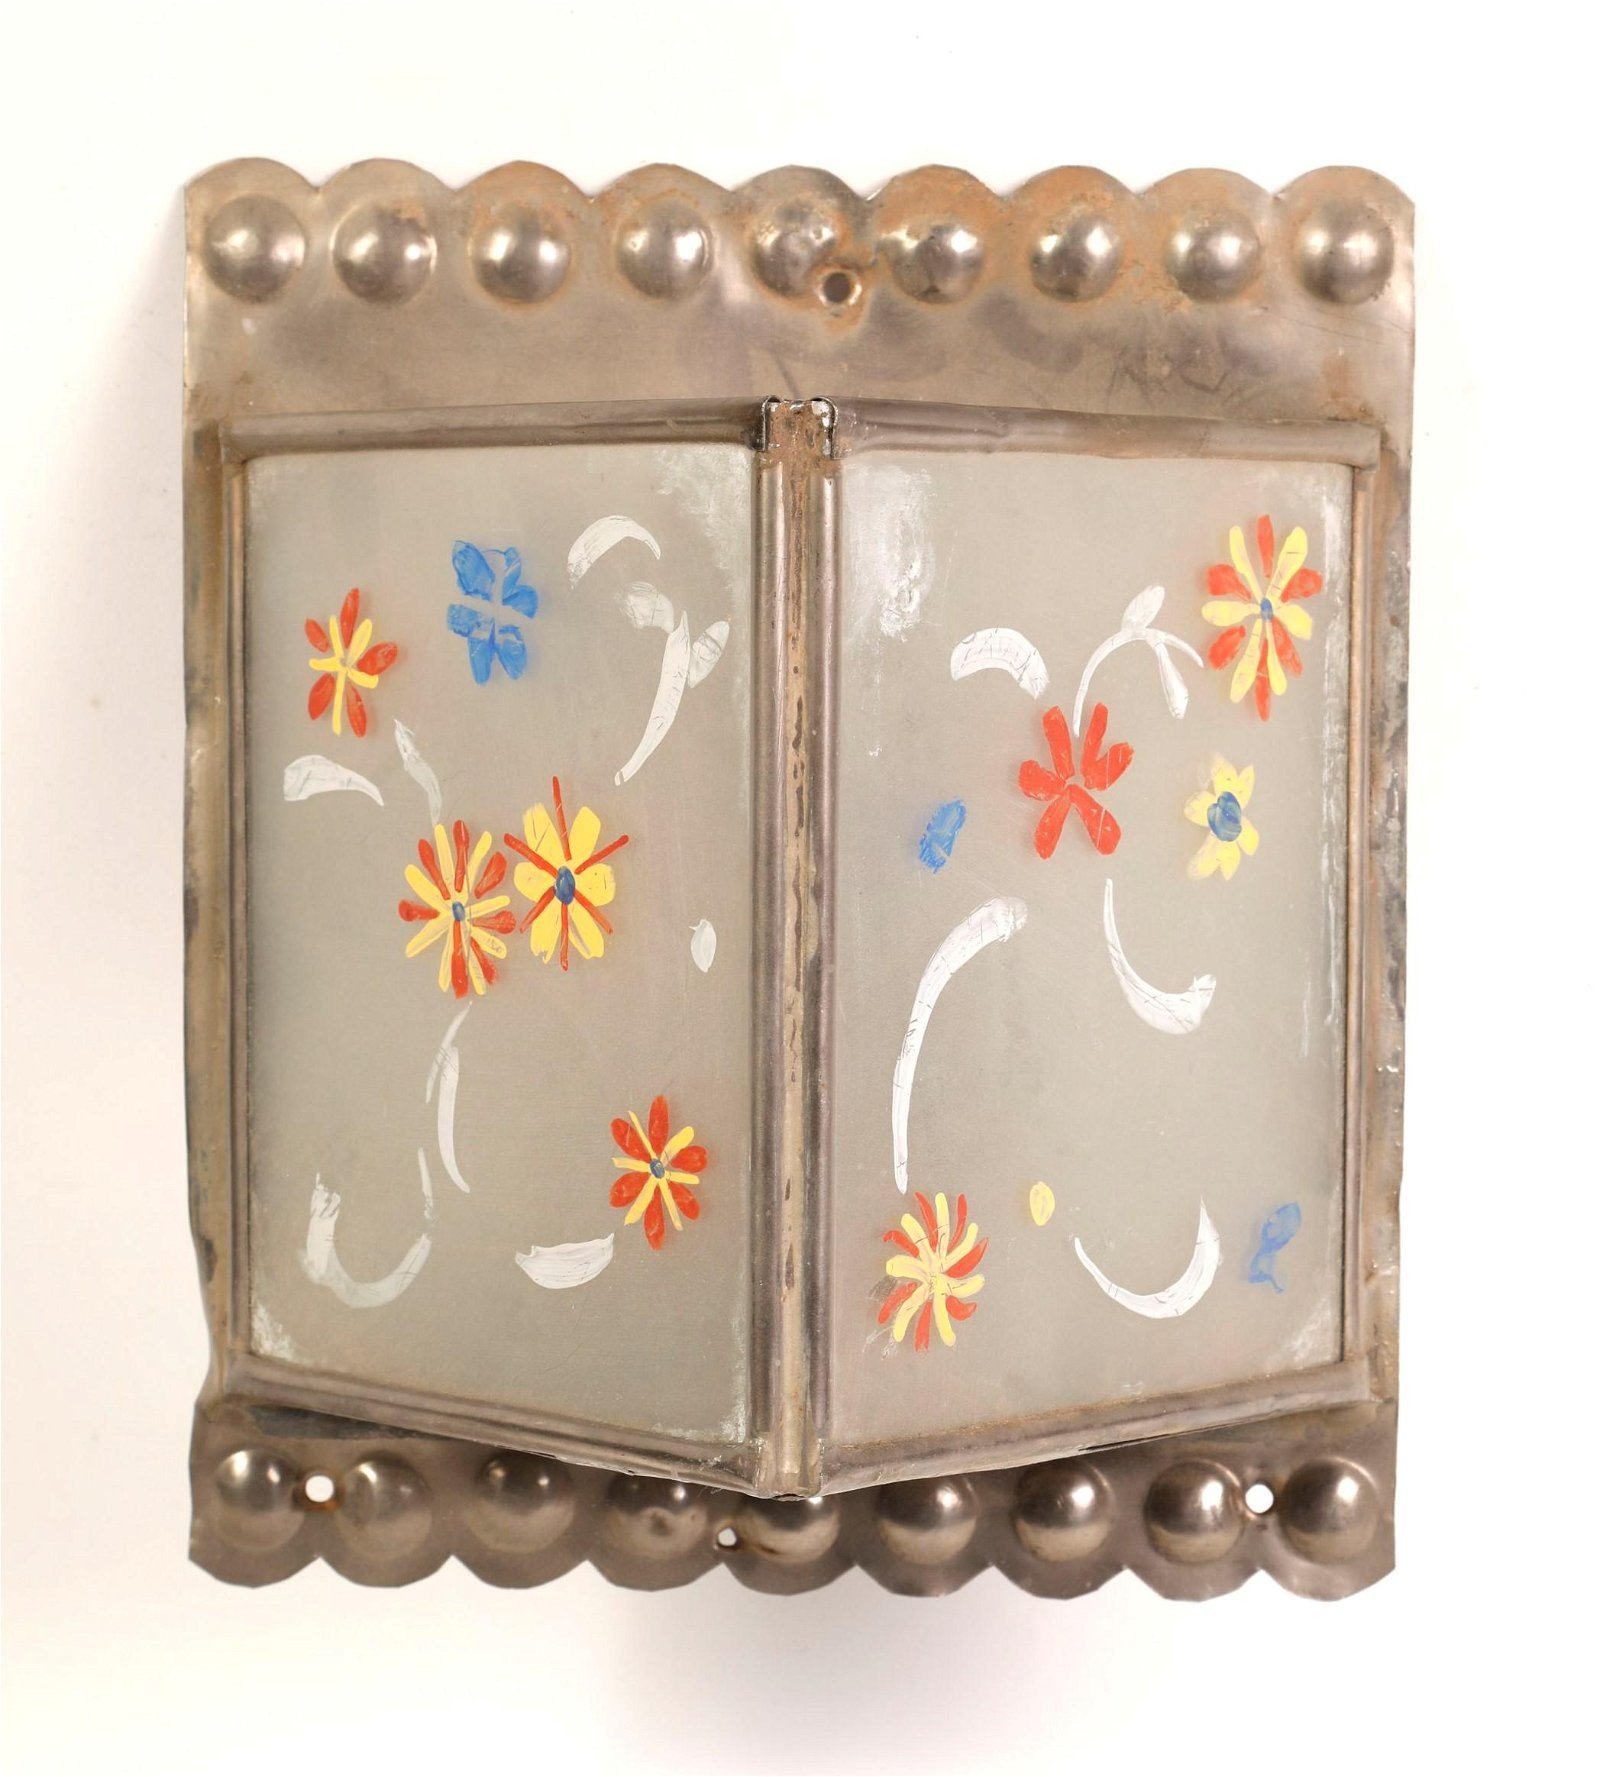 Tin Painted Wall Sconce with Glass Sides, ca. 1950